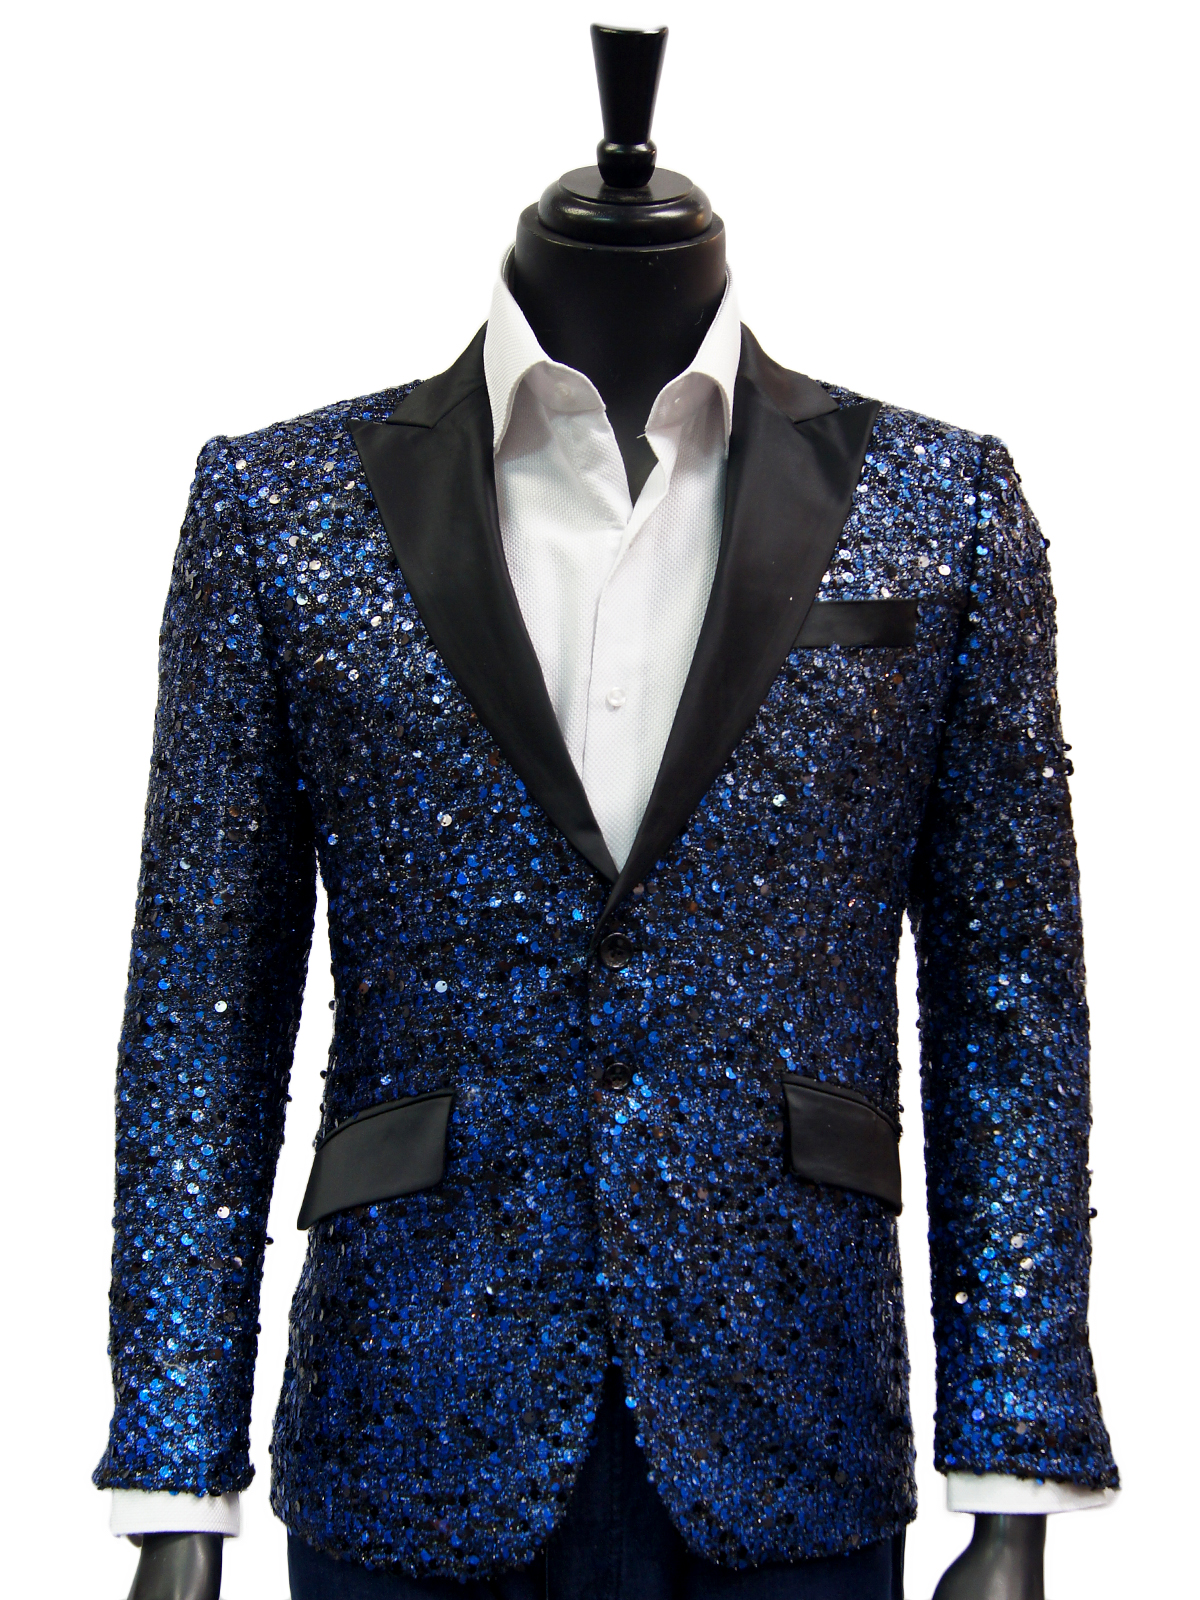 Mens Sequin Blazer - A Sparkling Attire: Sequin Blazer. Mens Sequin Blazer. Mens Sequin Jacket. Black Sequin Jacket. Black Sequin Blazer. Mens Sequin Tuxedo Jacket. Sparkly Blazer. Mens Glitter Blazer. Mens Sequin paisley Navy Blue ~ Black Dinner Jacket Tuxedo Blazer glitter sparkly Sport .